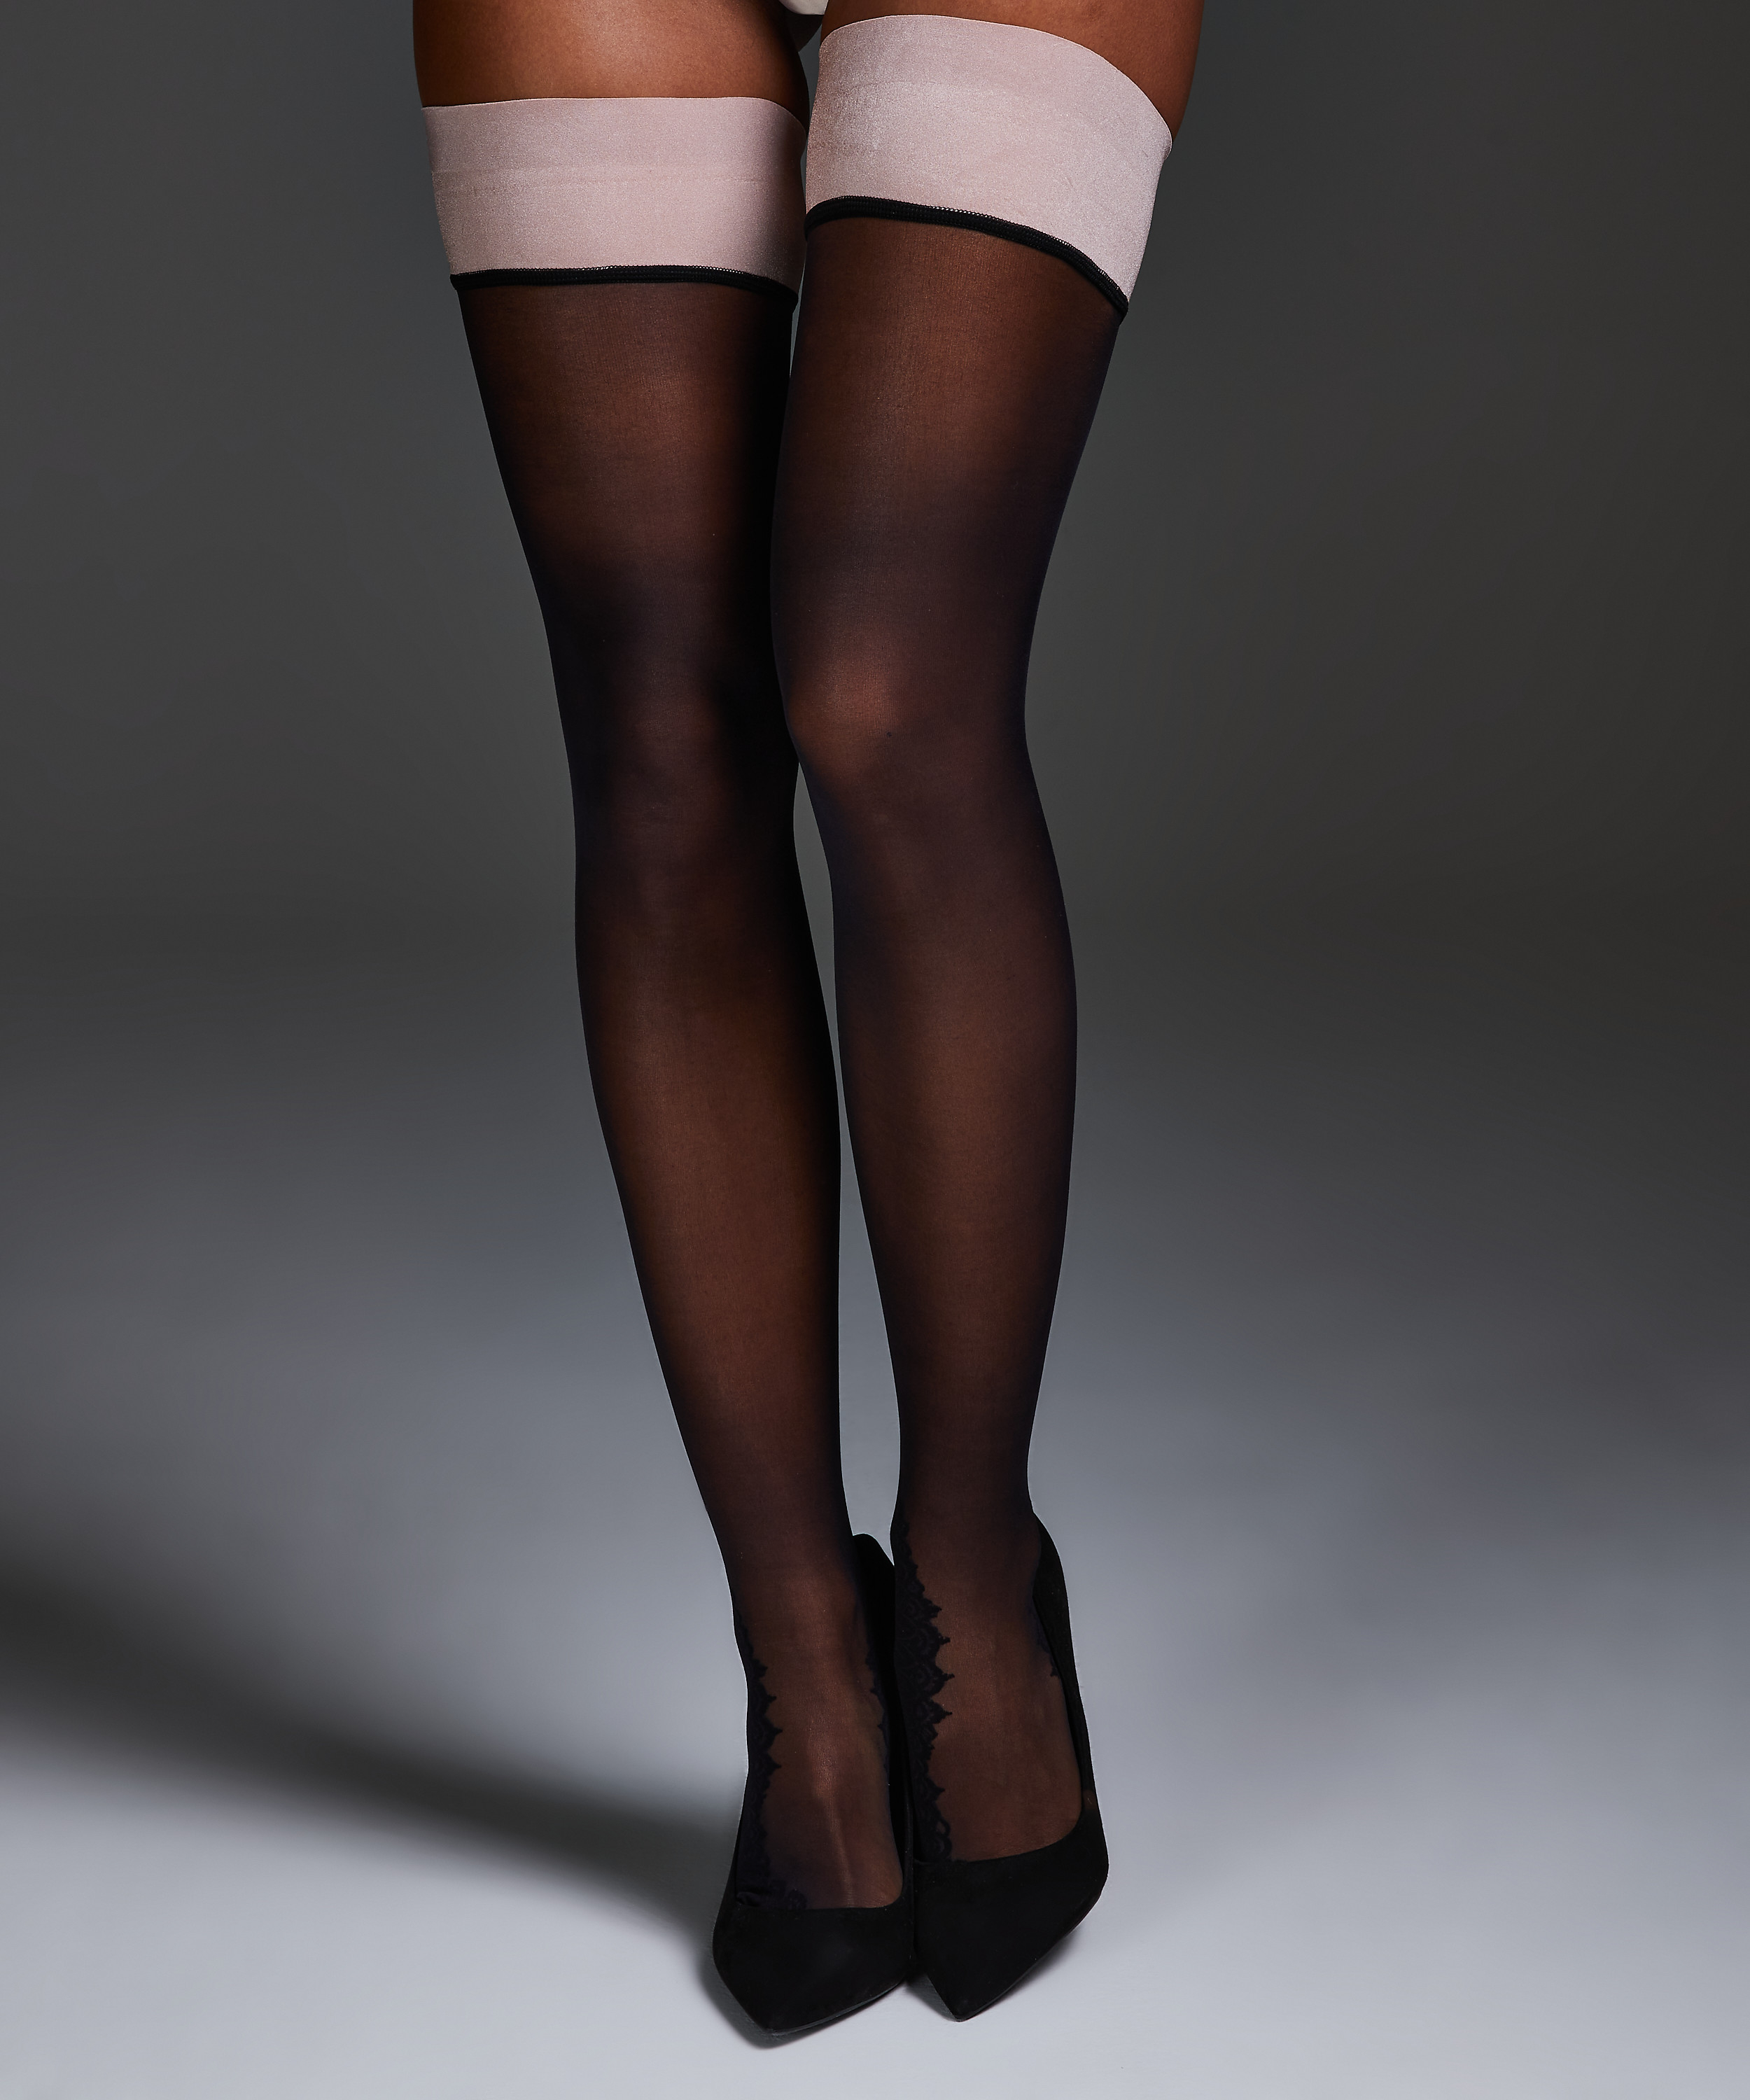 Noir Stay-up Delicate Lace, Pink, main